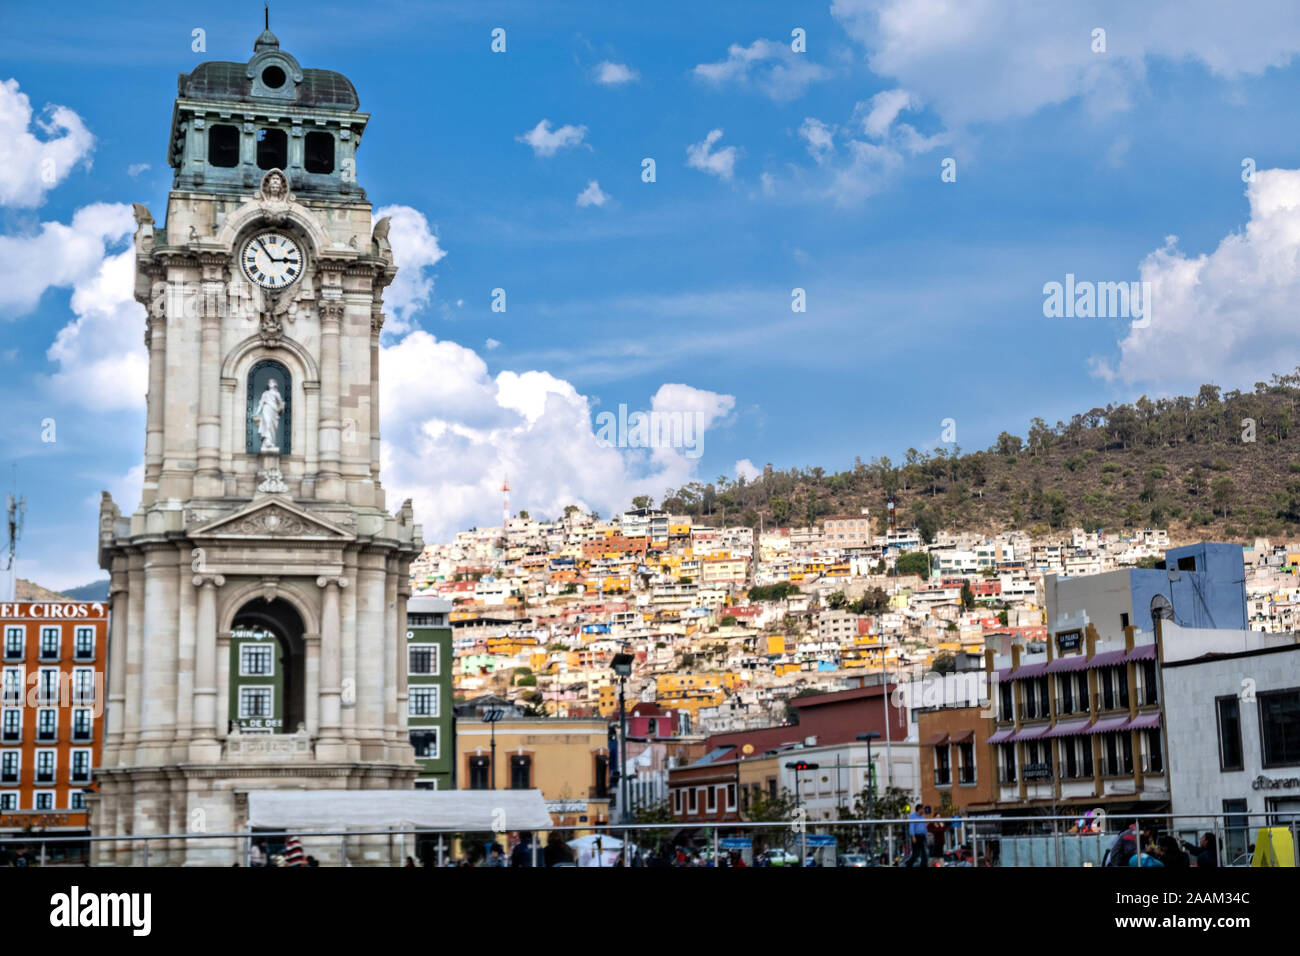 The Clocktower Monument Called Reloj Monumental De Pachuca In